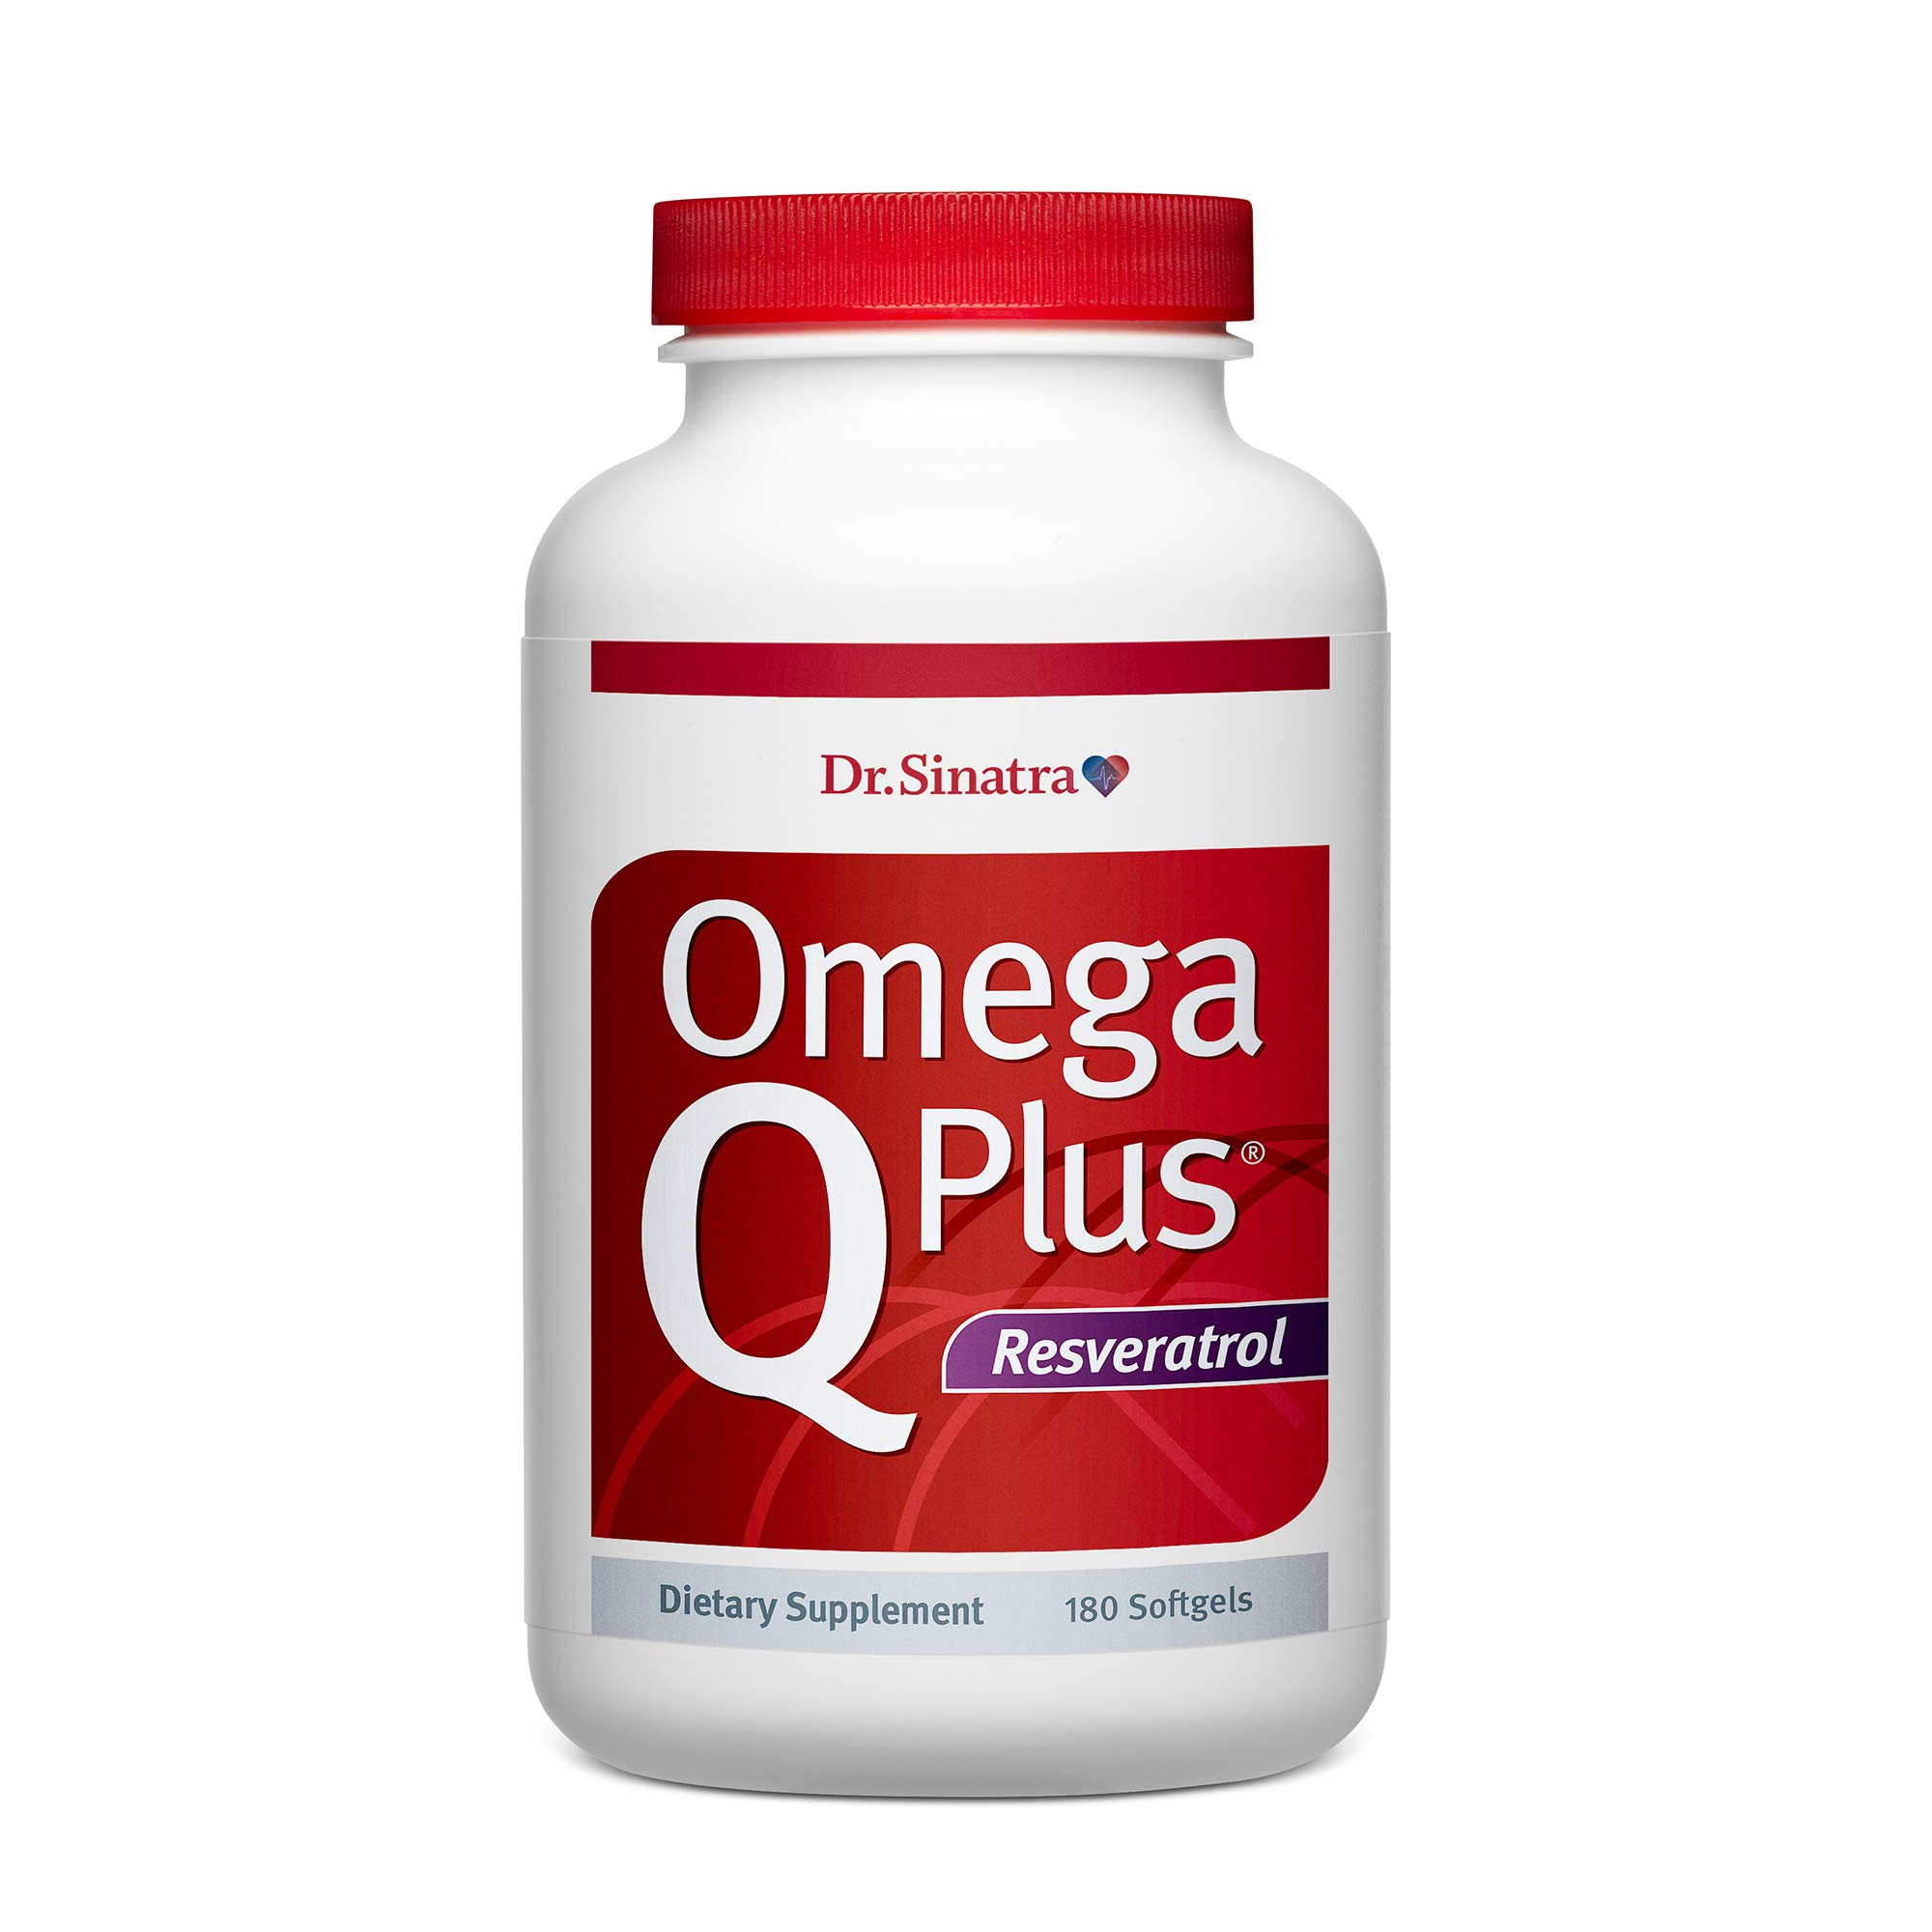 Dr. Sinatra's Omega Q Plus Resveratrol - Omega-3 Supplement with CoQ10 and Resveratrol - Promotes Comprehensive Heart and Whole Body Health to Help You Age Well (180 softgels) by Dr. Sinatra